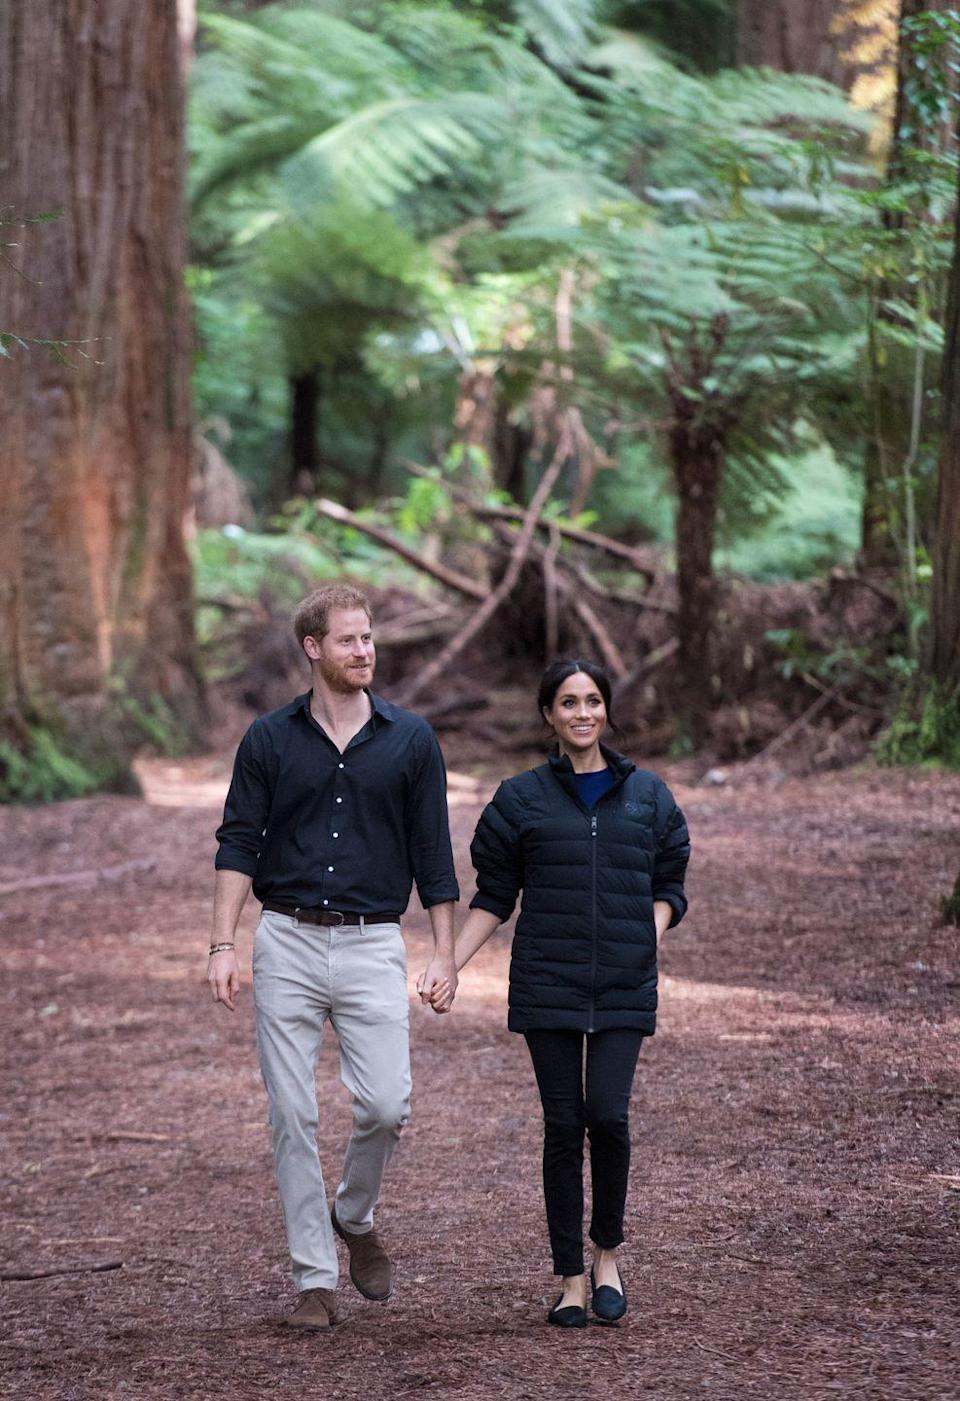 """<p>On their last day in New Zealand, Harry and Meghan visited the Redwoods Treewalk in Rotorua. the Duchess wore black jeans by Mother Denim with a navy sweater and black puffer jacket by Norrøna, <a href=""""https://www.townandcountrymag.com/style/fashion-trends/a24474703/meghan-markle-prince-harry-jacket-final-day-royal-tour-outfit-new-zealand-photo/"""" rel=""""nofollow noopener"""" target=""""_blank"""" data-ylk=""""slk:which she borrowed from Prince Harry"""" class=""""link rapid-noclick-resp"""">which she borrowed from Prince Harry</a>. She also wore black flats by Birdies.</p><p><a class=""""link rapid-noclick-resp"""" href=""""https://go.redirectingat.com?id=74968X1596630&url=https%3A%2F%2Fwww.shopbop.com%2Flooker-skinny-jeans-mother%2Fvp%2Fv%3D1%2F1534840640.htm&sref=https%3A%2F%2Fwww.townandcountrymag.com%2Fstyle%2Ffashion-trends%2Fg3272%2Fmeghan-markle-preppy-style%2F"""" rel=""""nofollow noopener"""" target=""""_blank"""" data-ylk=""""slk:SHOP NOW"""">SHOP NOW</a> <em>Skinny Jeans by MOTHER Denim, $196</em></p><p><a class=""""link rapid-noclick-resp"""" href=""""https://go.redirectingat.com?id=74968X1596630&url=https%3A%2F%2Fwww.altitude-sports.com%2Fproducts%2Fnorrona-mens-oslo-lightweight-down850-jacket-llll-nor-4821-18&sref=https%3A%2F%2Fwww.townandcountrymag.com%2Fstyle%2Ffashion-trends%2Fg3272%2Fmeghan-markle-preppy-style%2F"""" rel=""""nofollow noopener"""" target=""""_blank"""" data-ylk=""""slk:SHOP NOW"""">SHOP NOW</a> <em>Norrøna Puffer Jacket, $486</em></p>"""